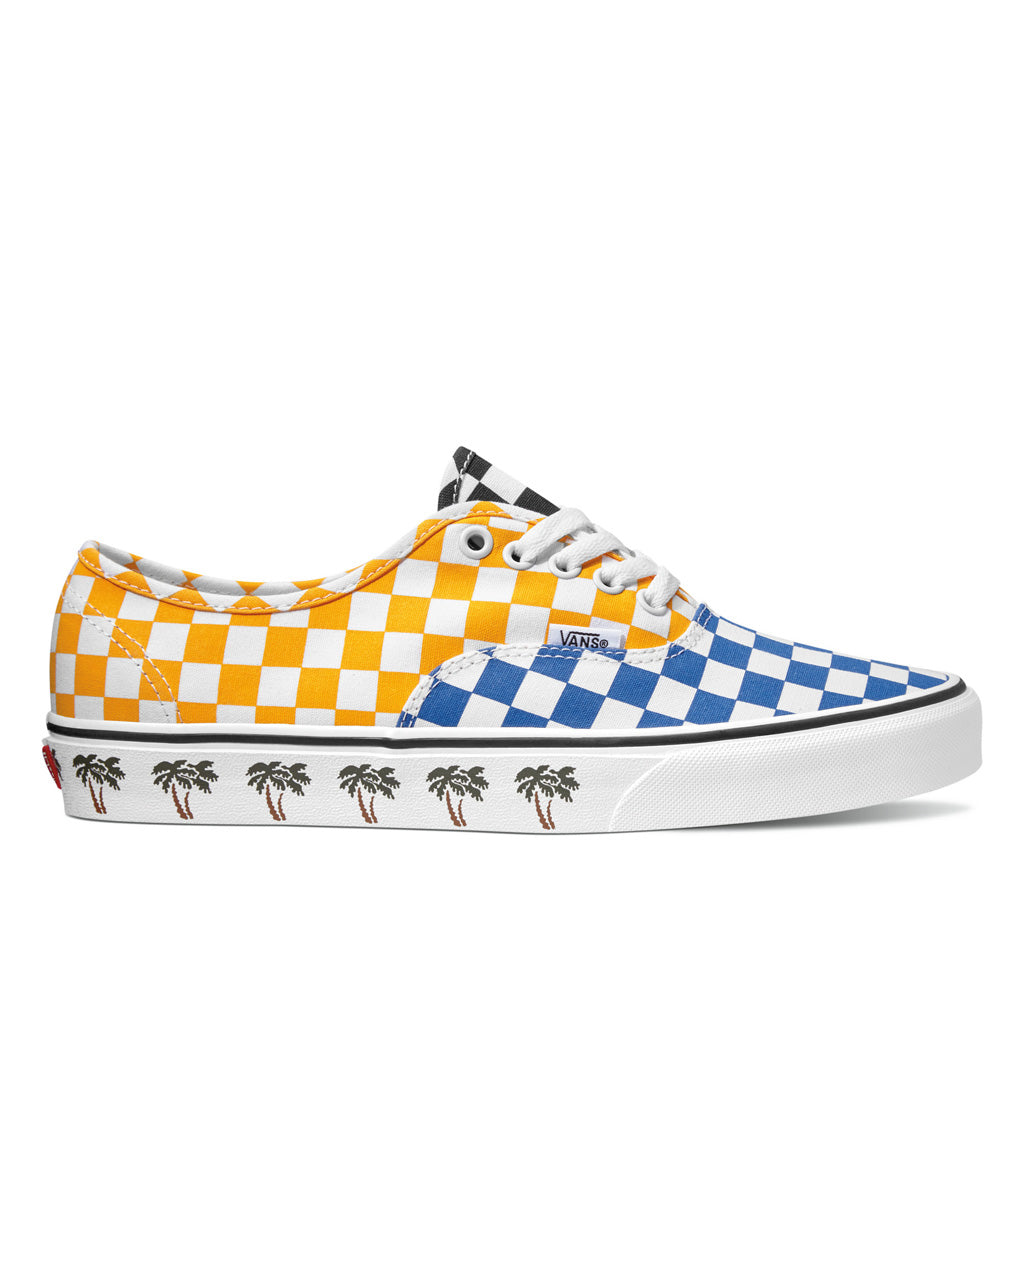 Authentic Sidewall - Palm Tree/Checkerboard